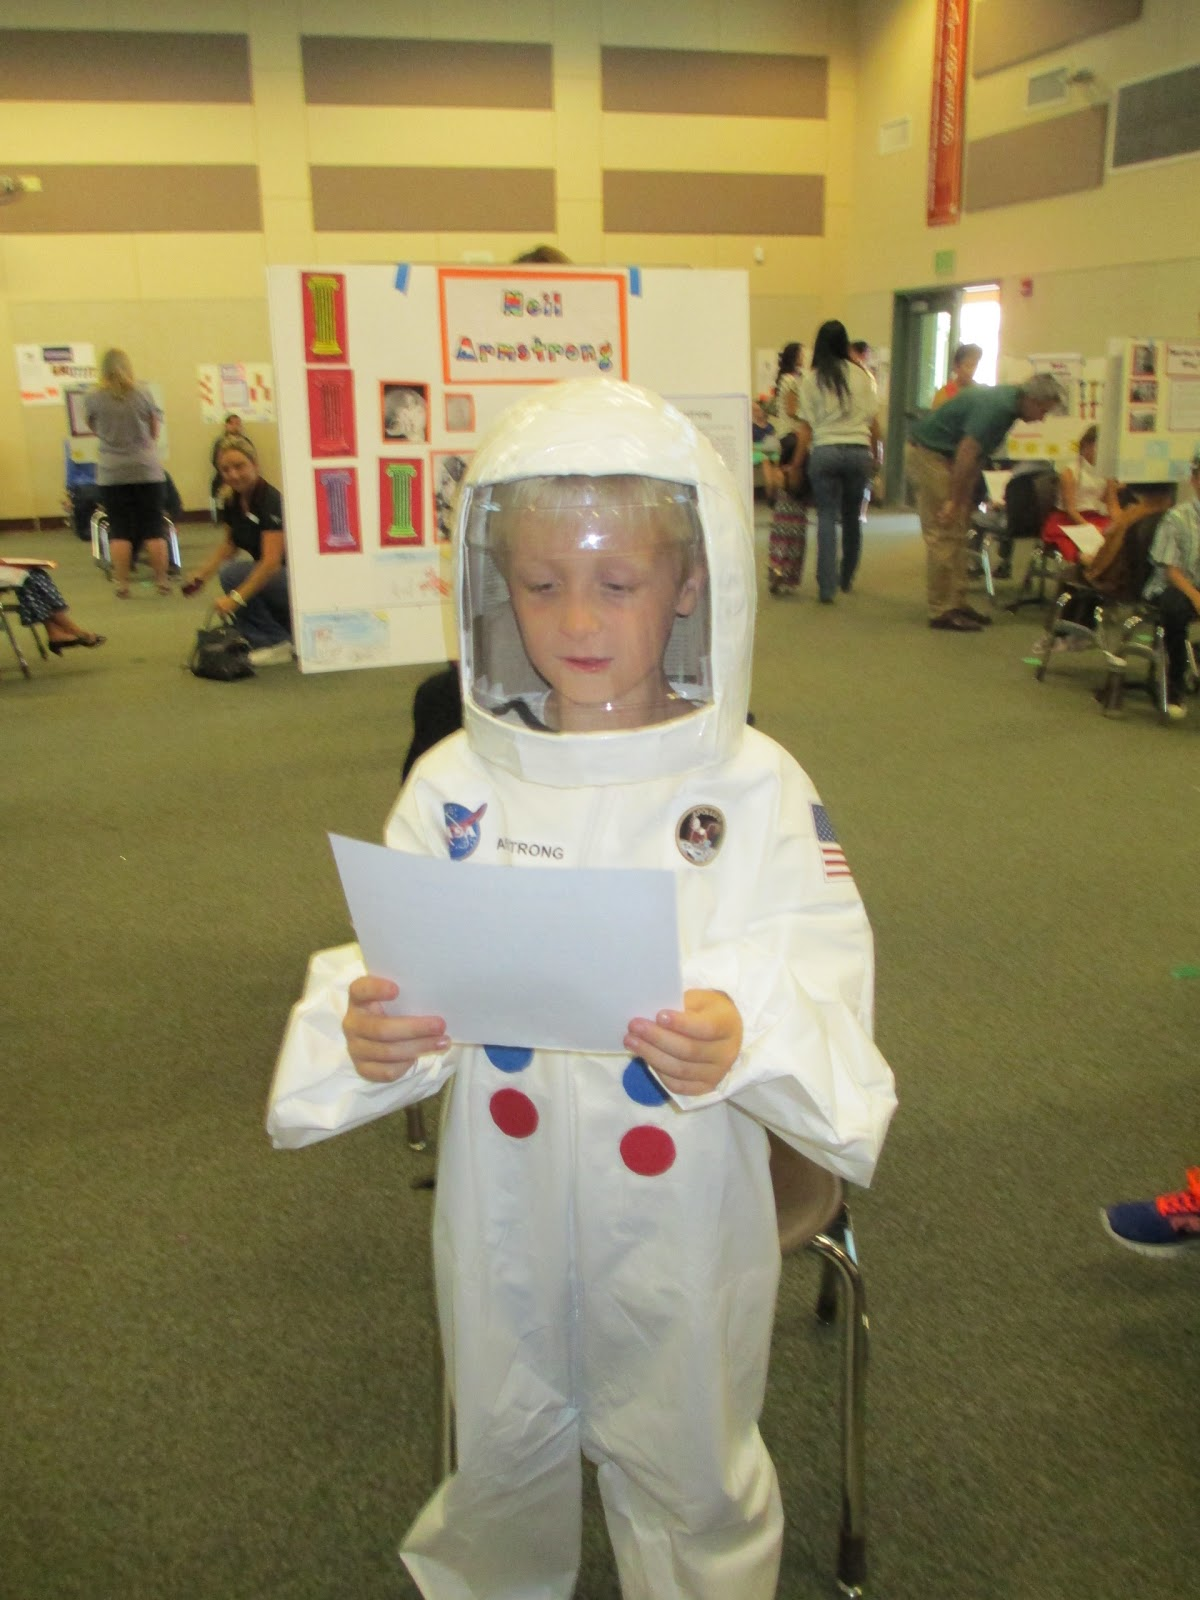 Neil Armstrong Costume. | Well begun is half-done